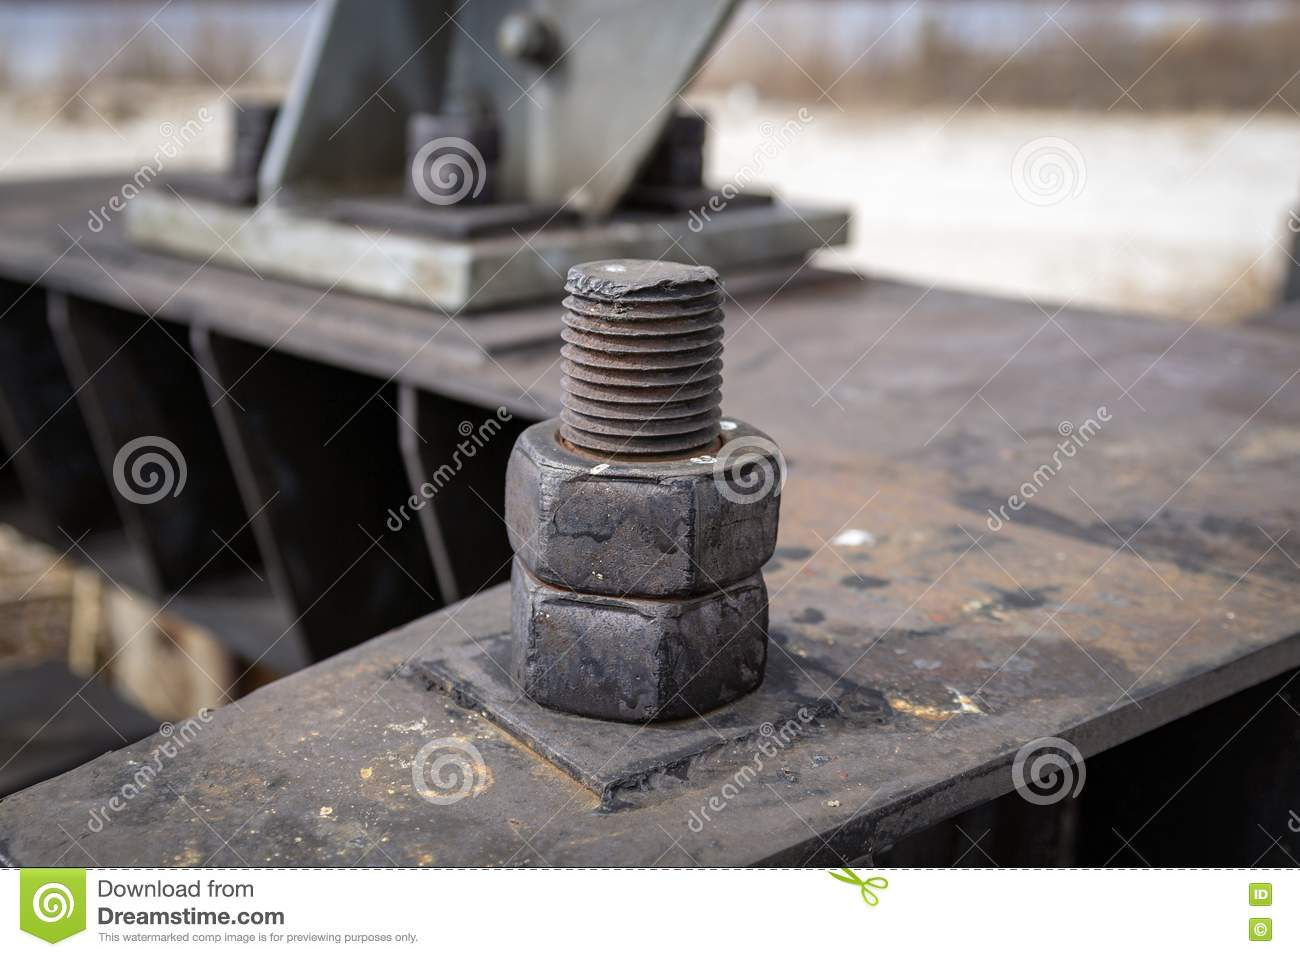 The rusty bolt is an element of the metal structure.